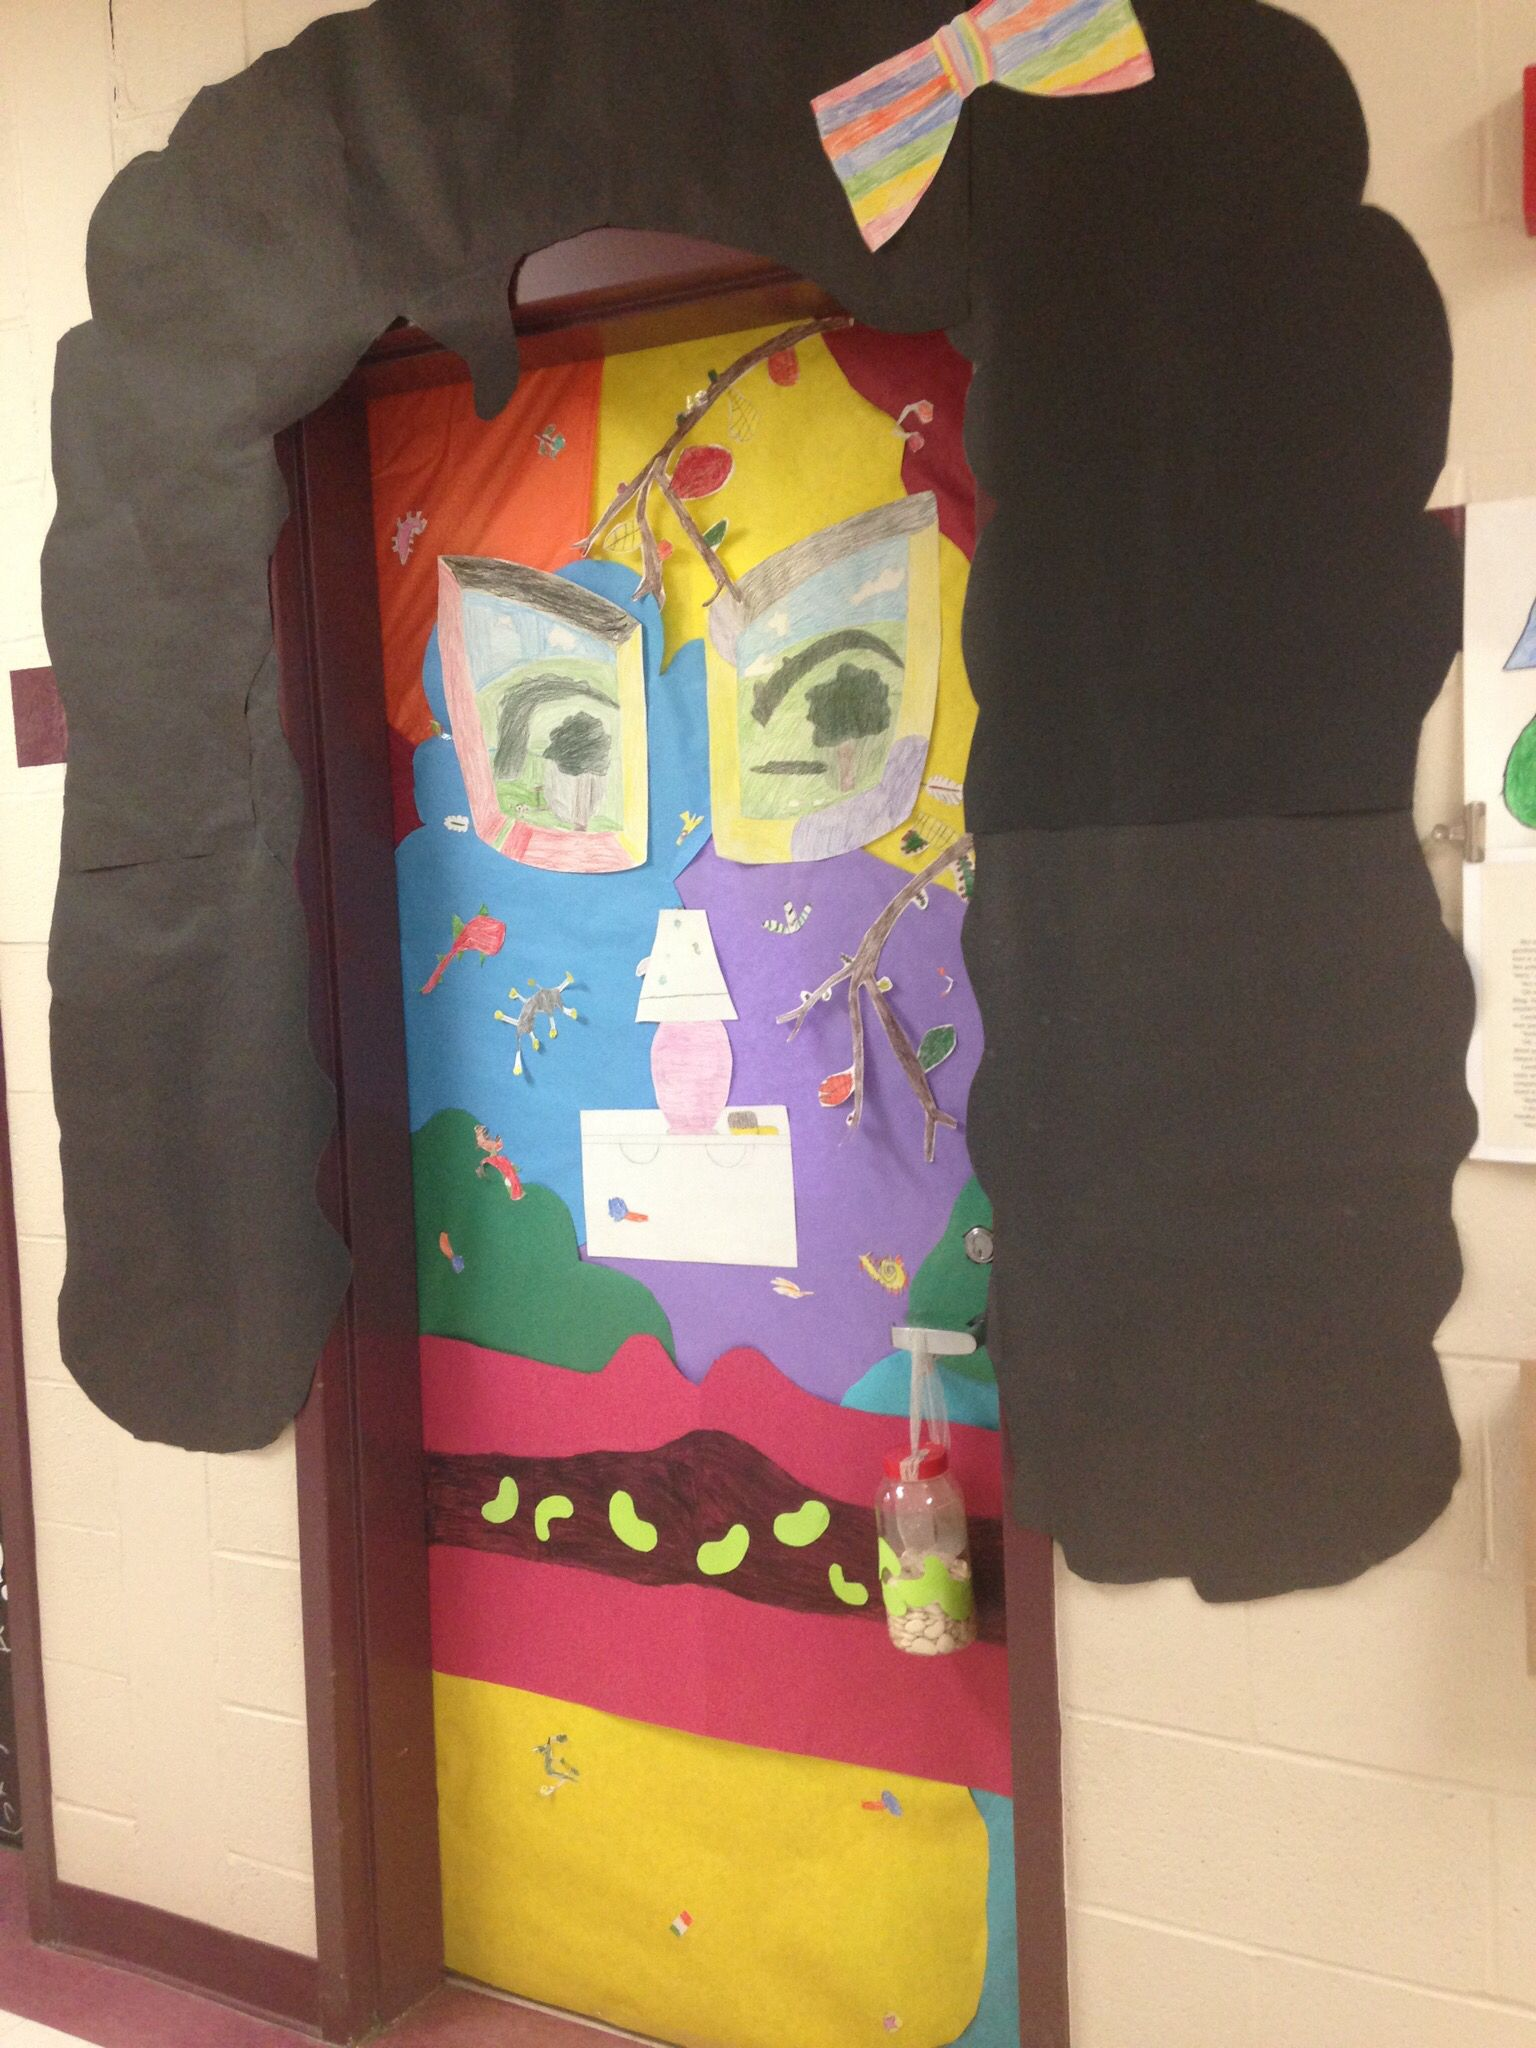 A Bad Case Of Stripes Door Decorating By 4th Graders